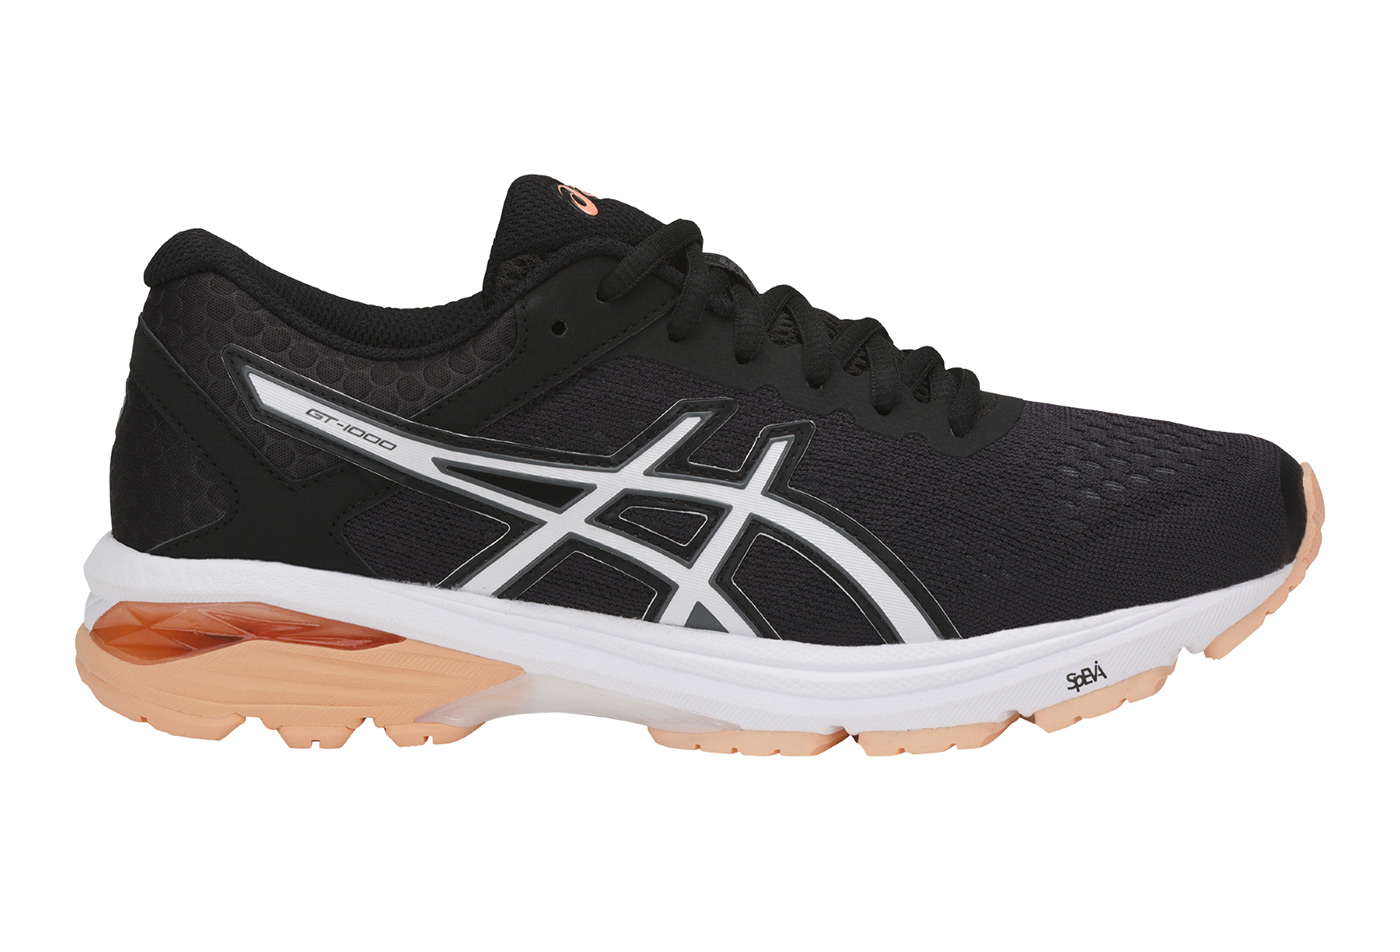 ASICS GT-1000 6 Women's Shoes Black